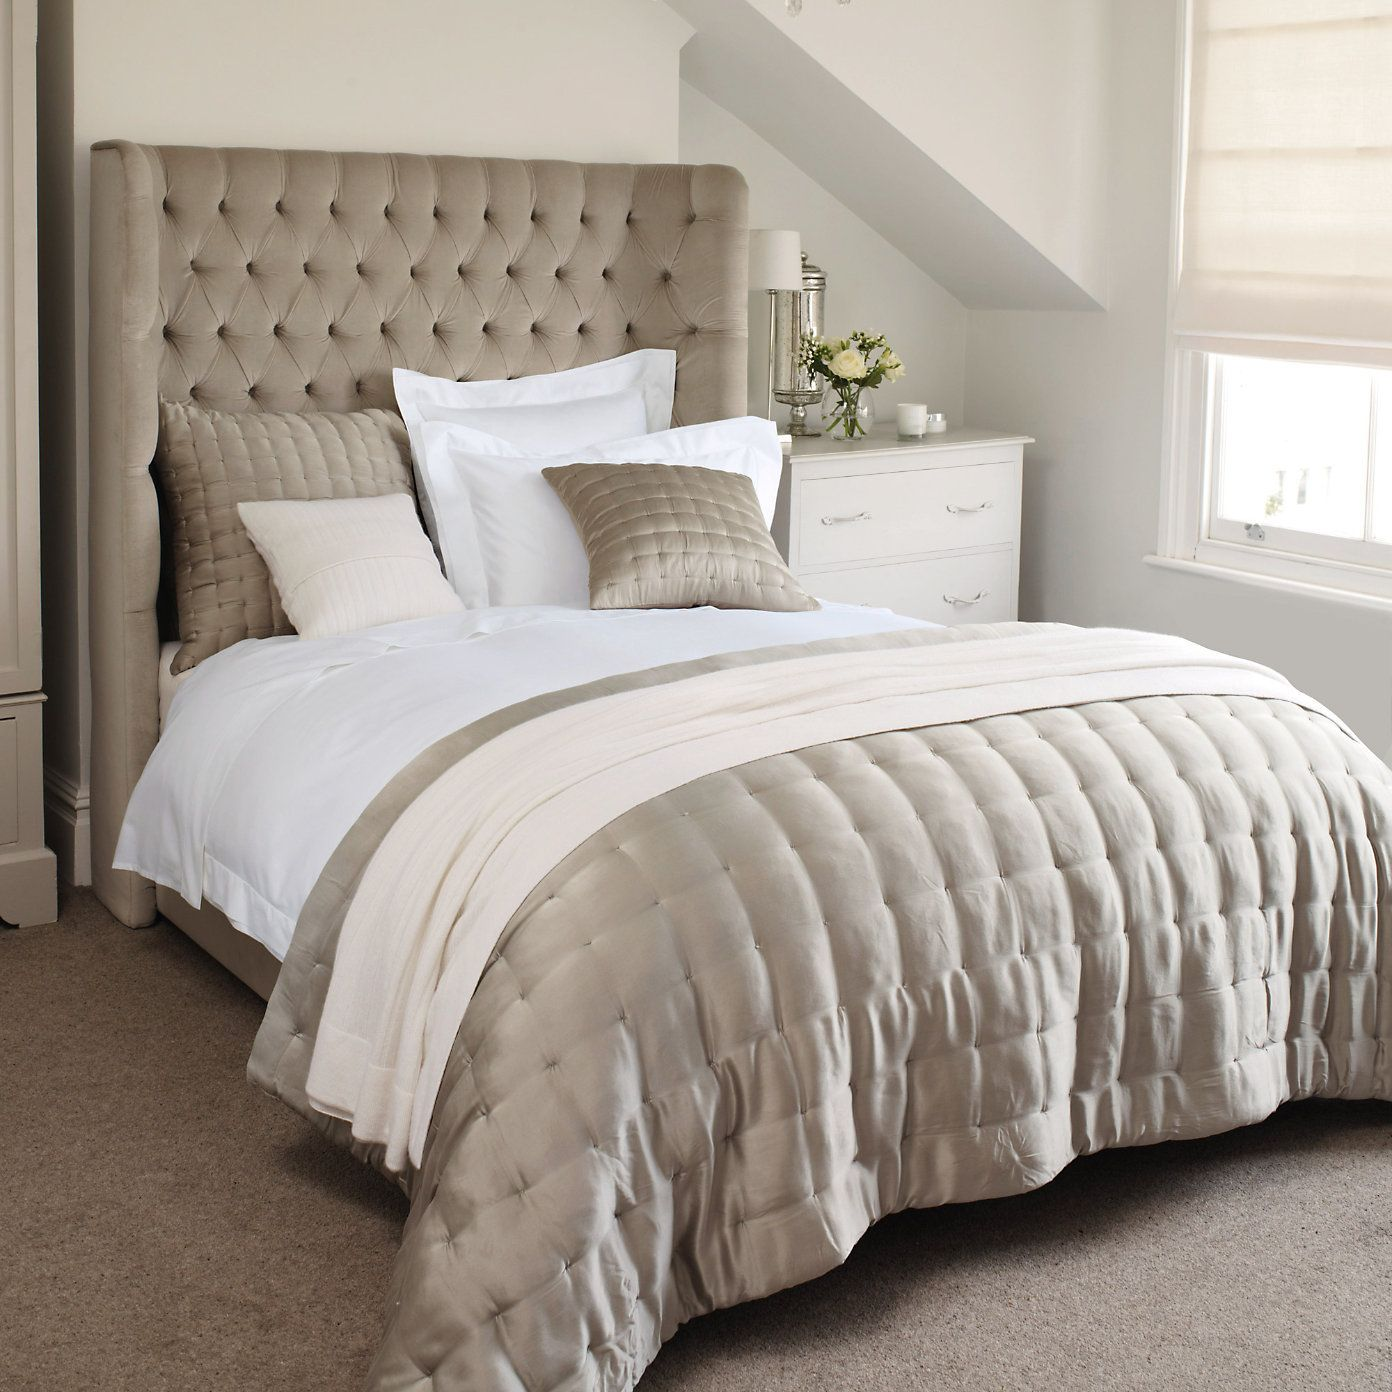 Cashmere Throw Bedspreads Cushions The White Company